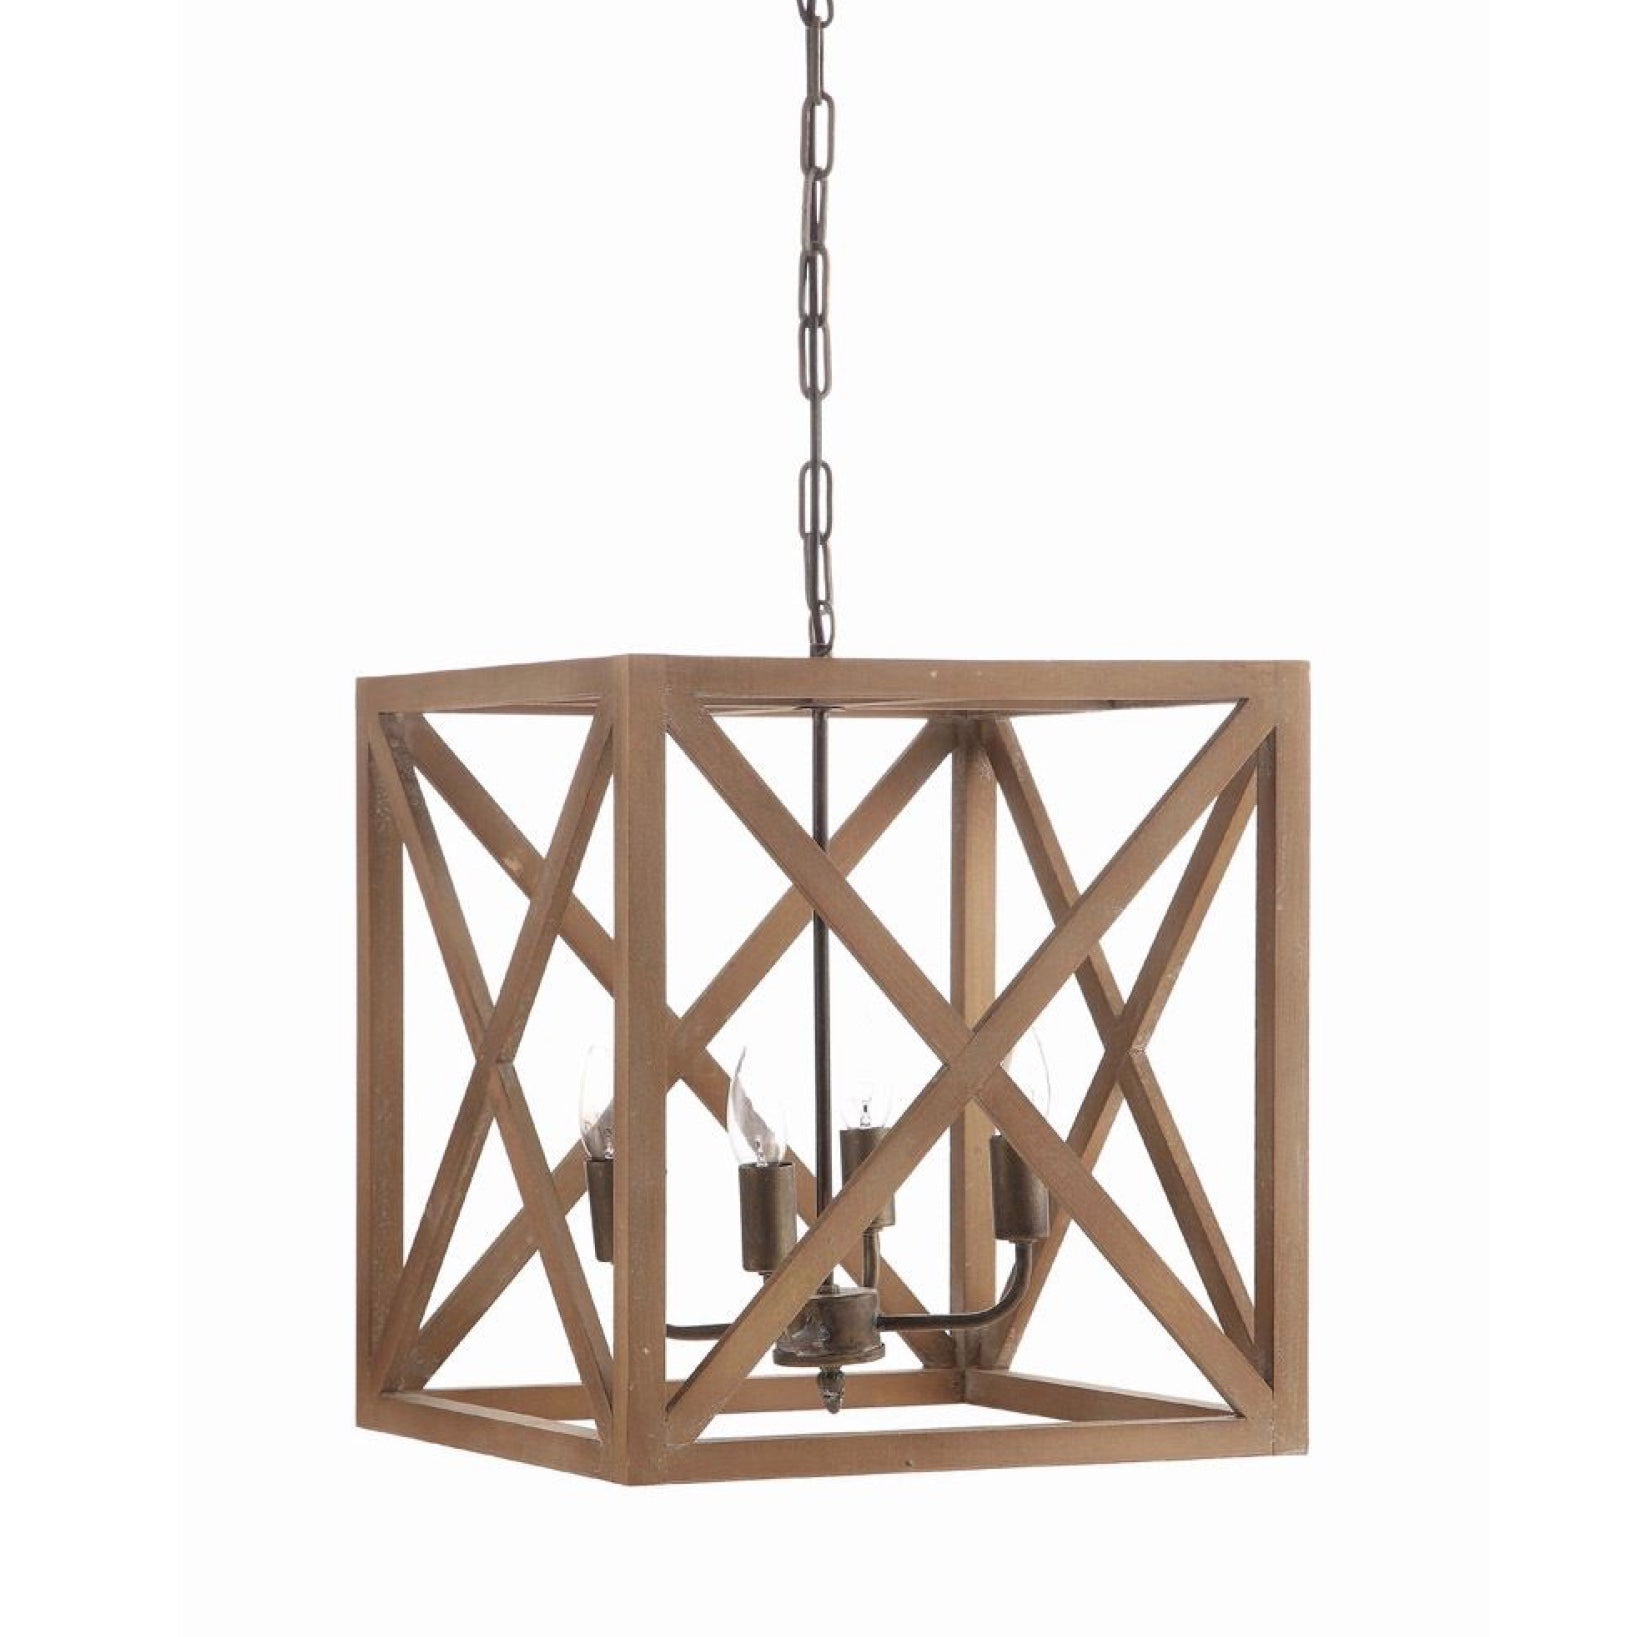 Metal and Wood Square Light Fixture, CCO-Creative Co-op - Design Home, Putti Fine Furnishings